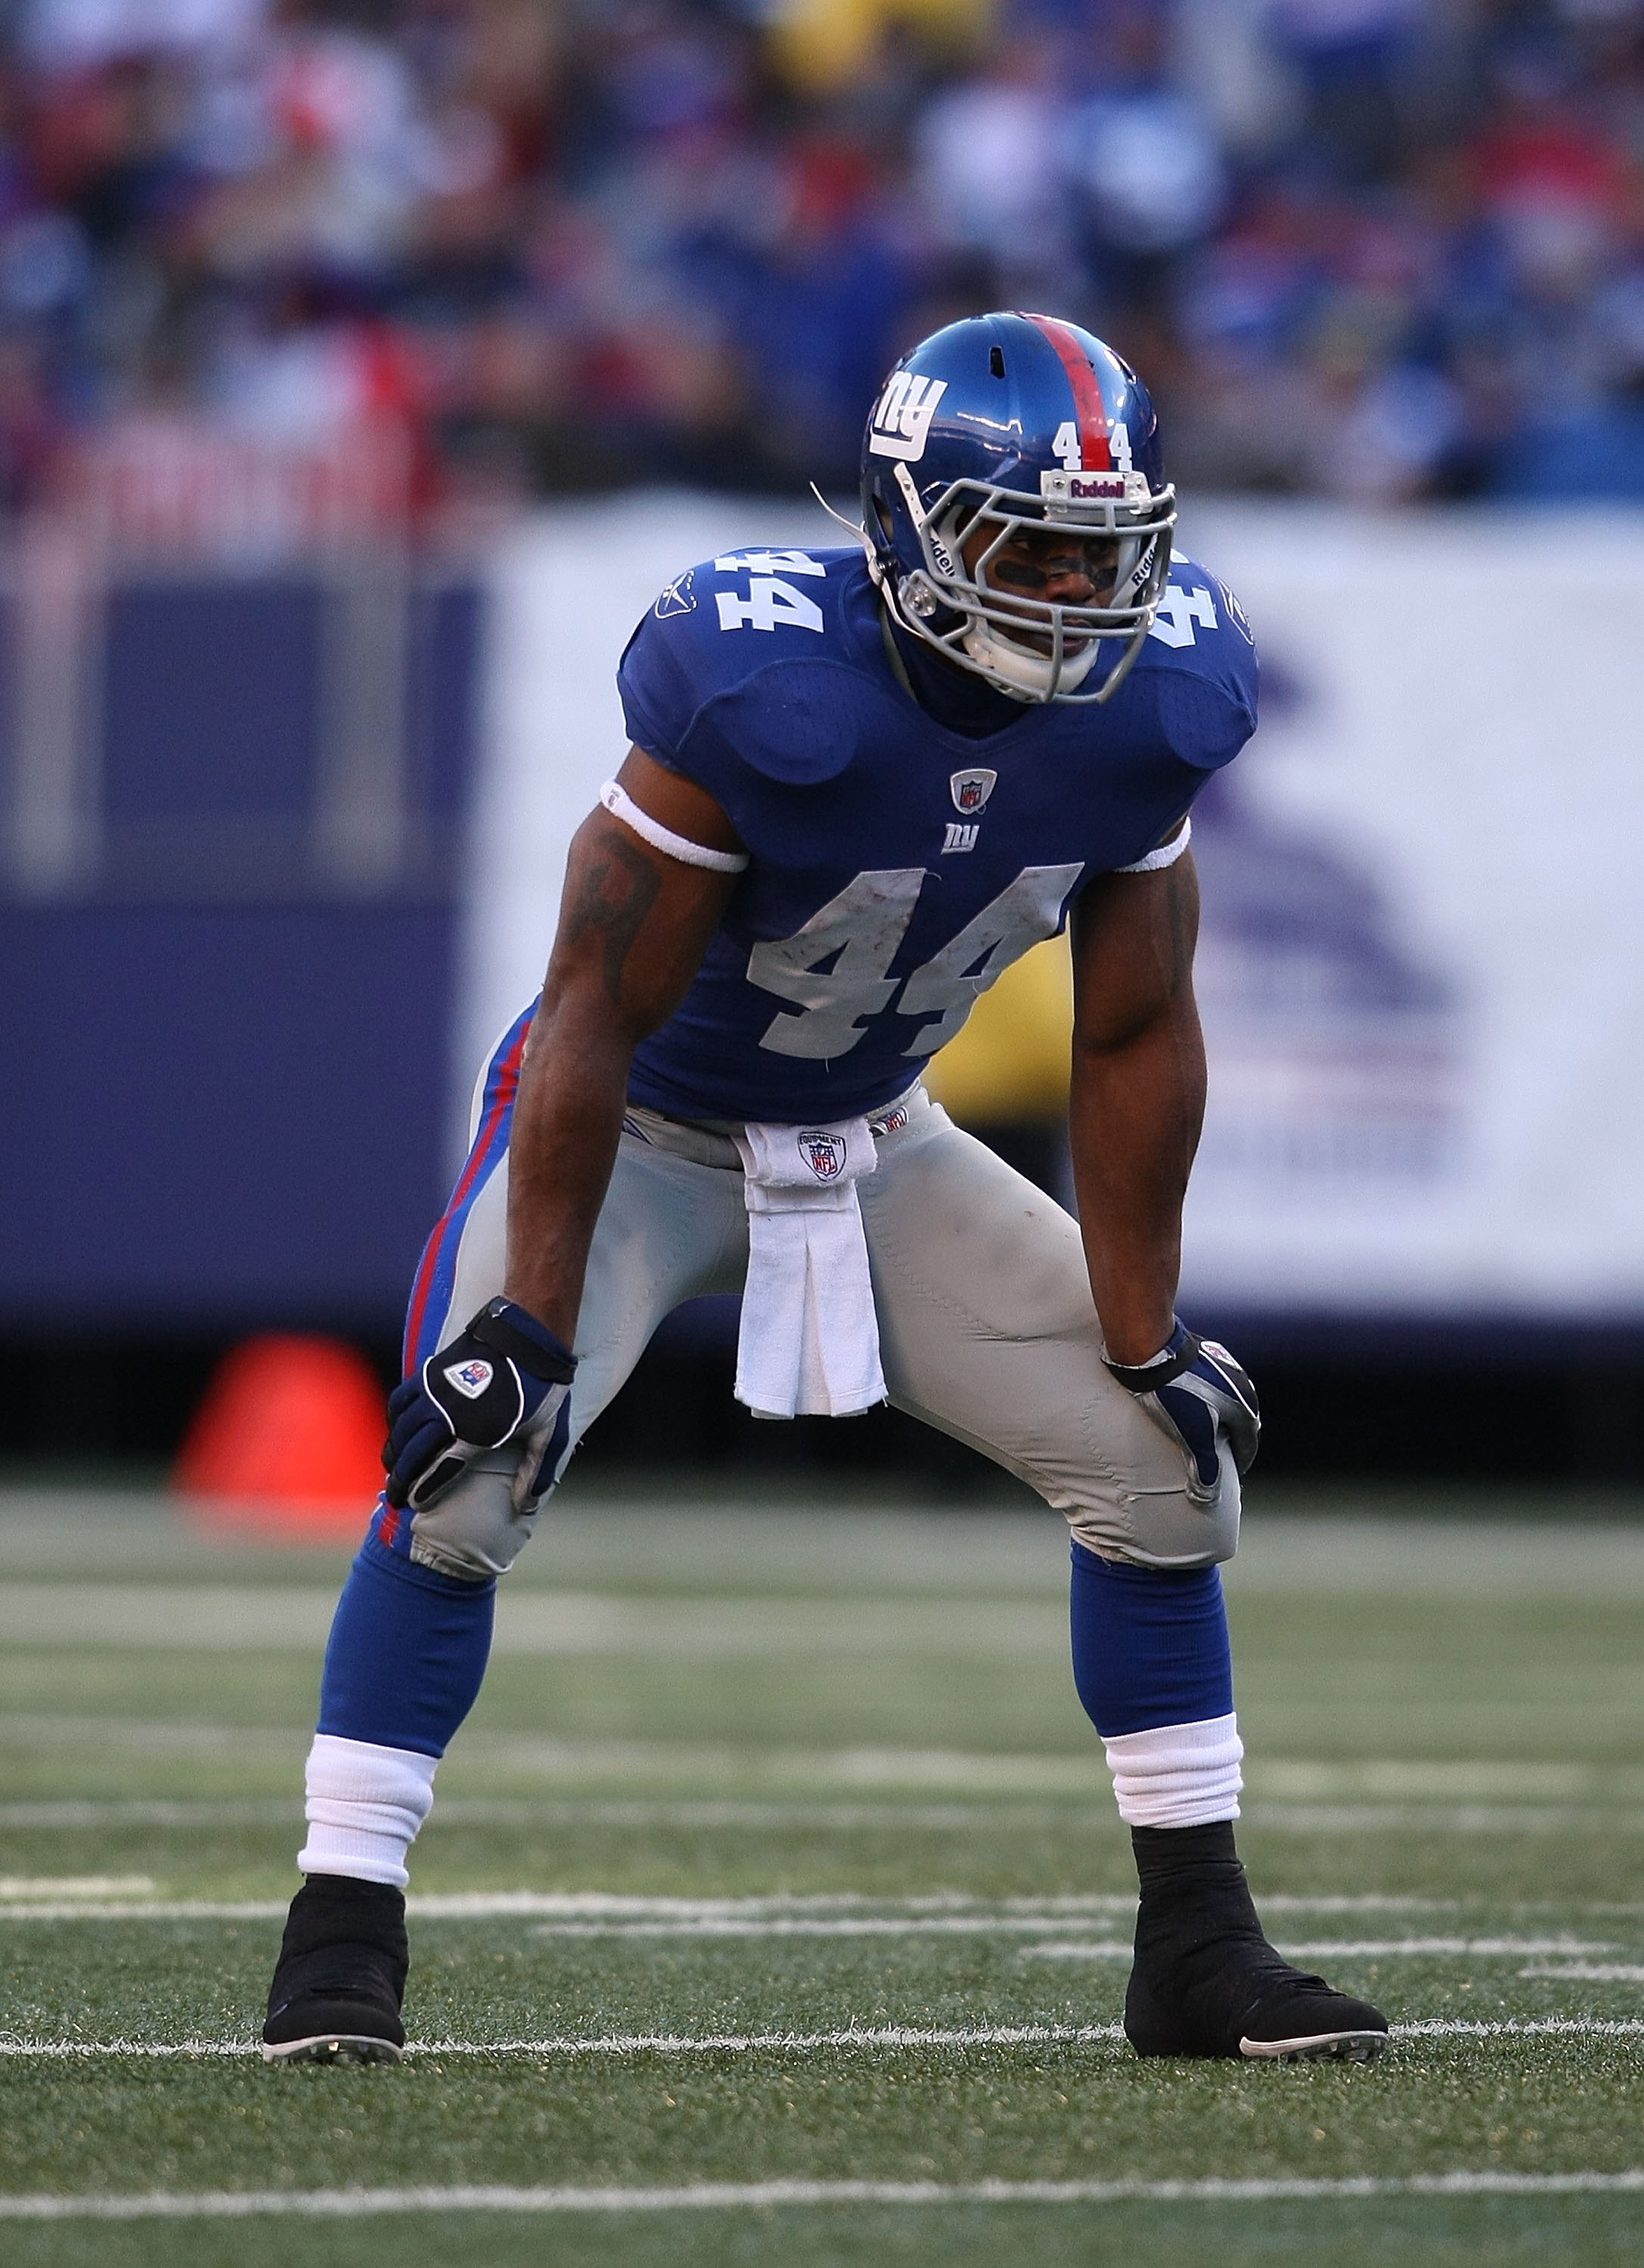 EAST RUTHERFORD, NJ - DECEMBER 27:  Ahmad Bradshaw #44  of the New York Giants against the Carolina Panthers at Giants Stadium on December 27, 2009 in East Rutherford, New Jersey.  (Photo by Nick Laham/Getty Images)